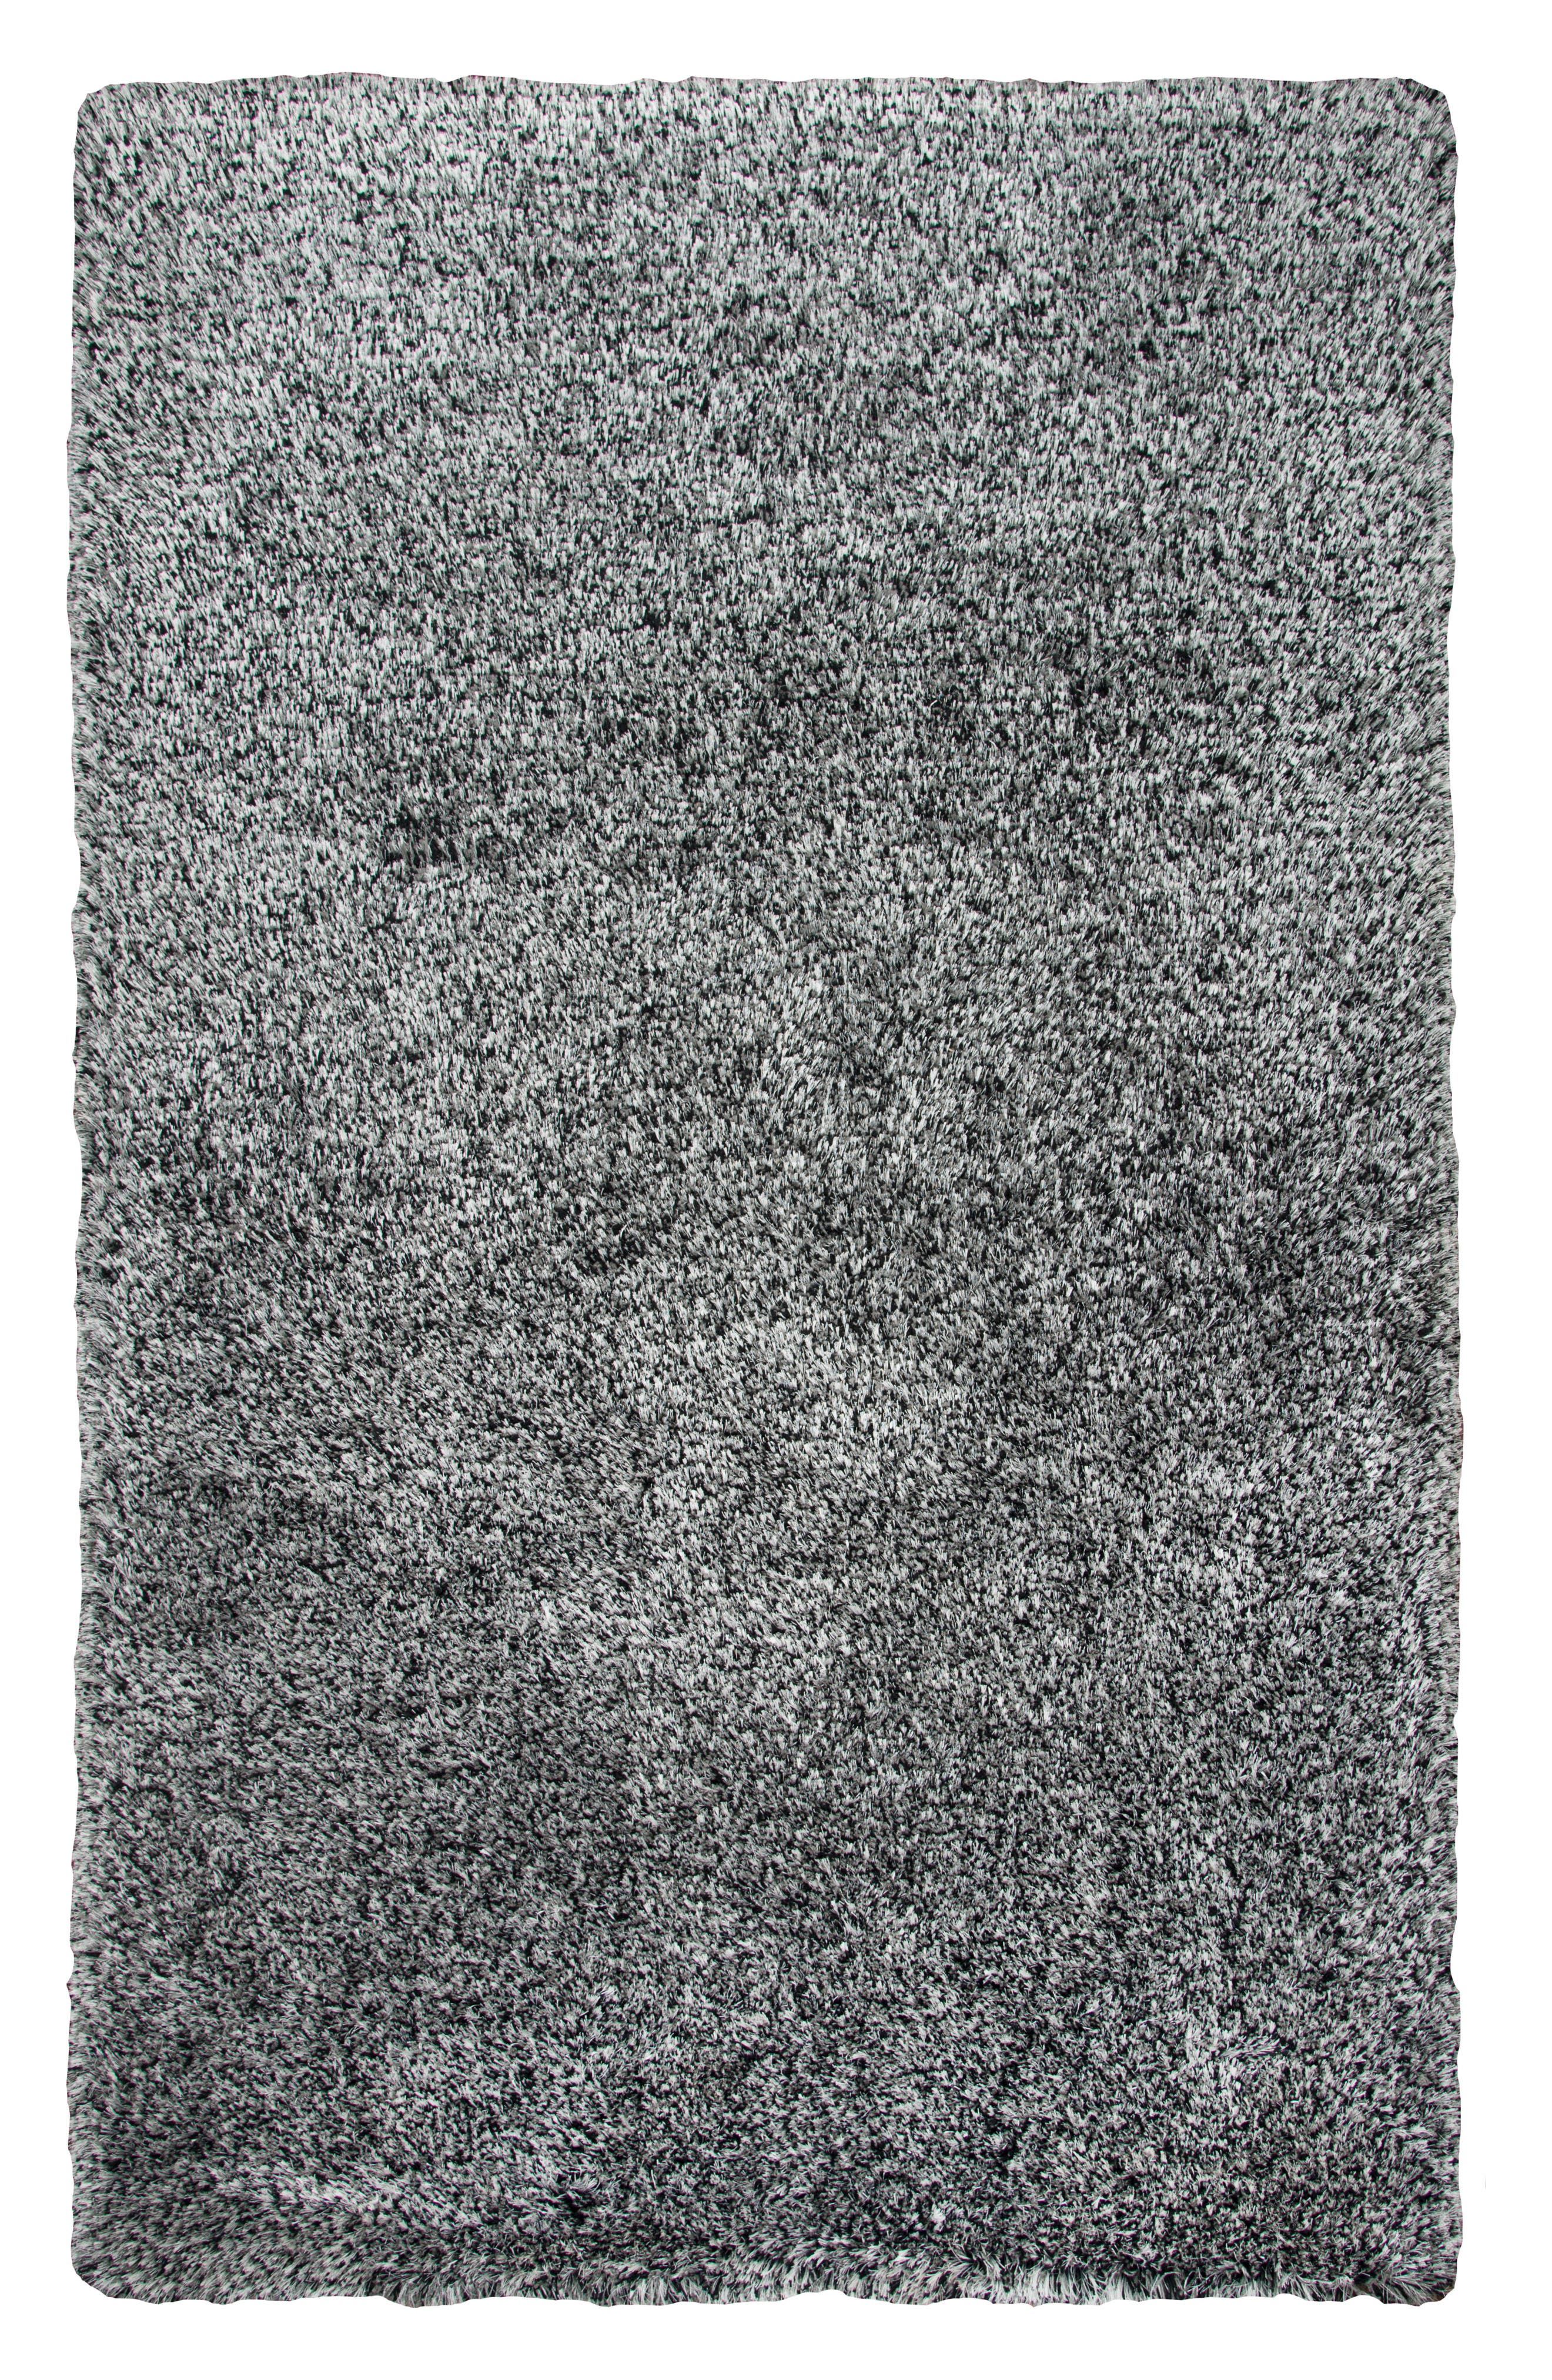 Main Image - Rizzy Home Commons Thea Rug